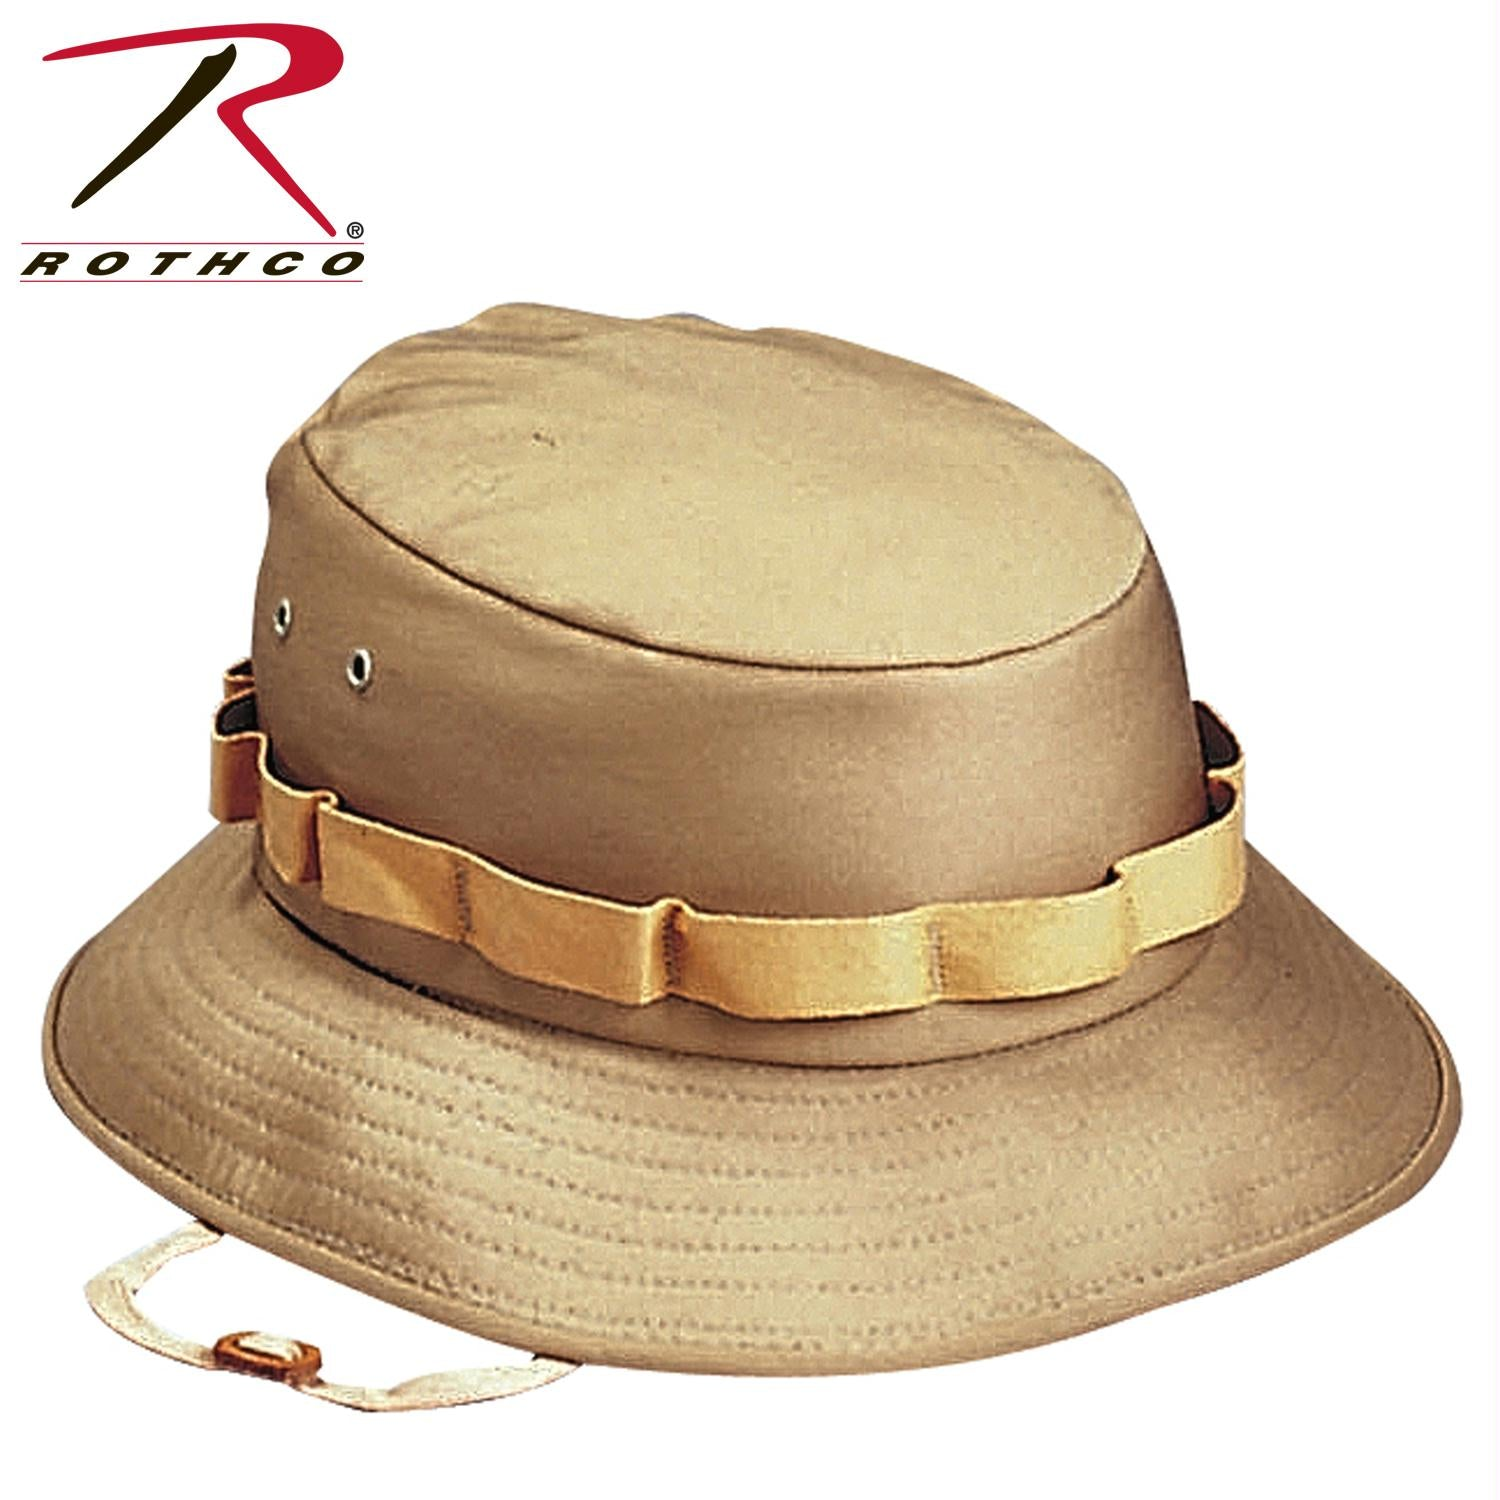 Rothco Jungle Hat